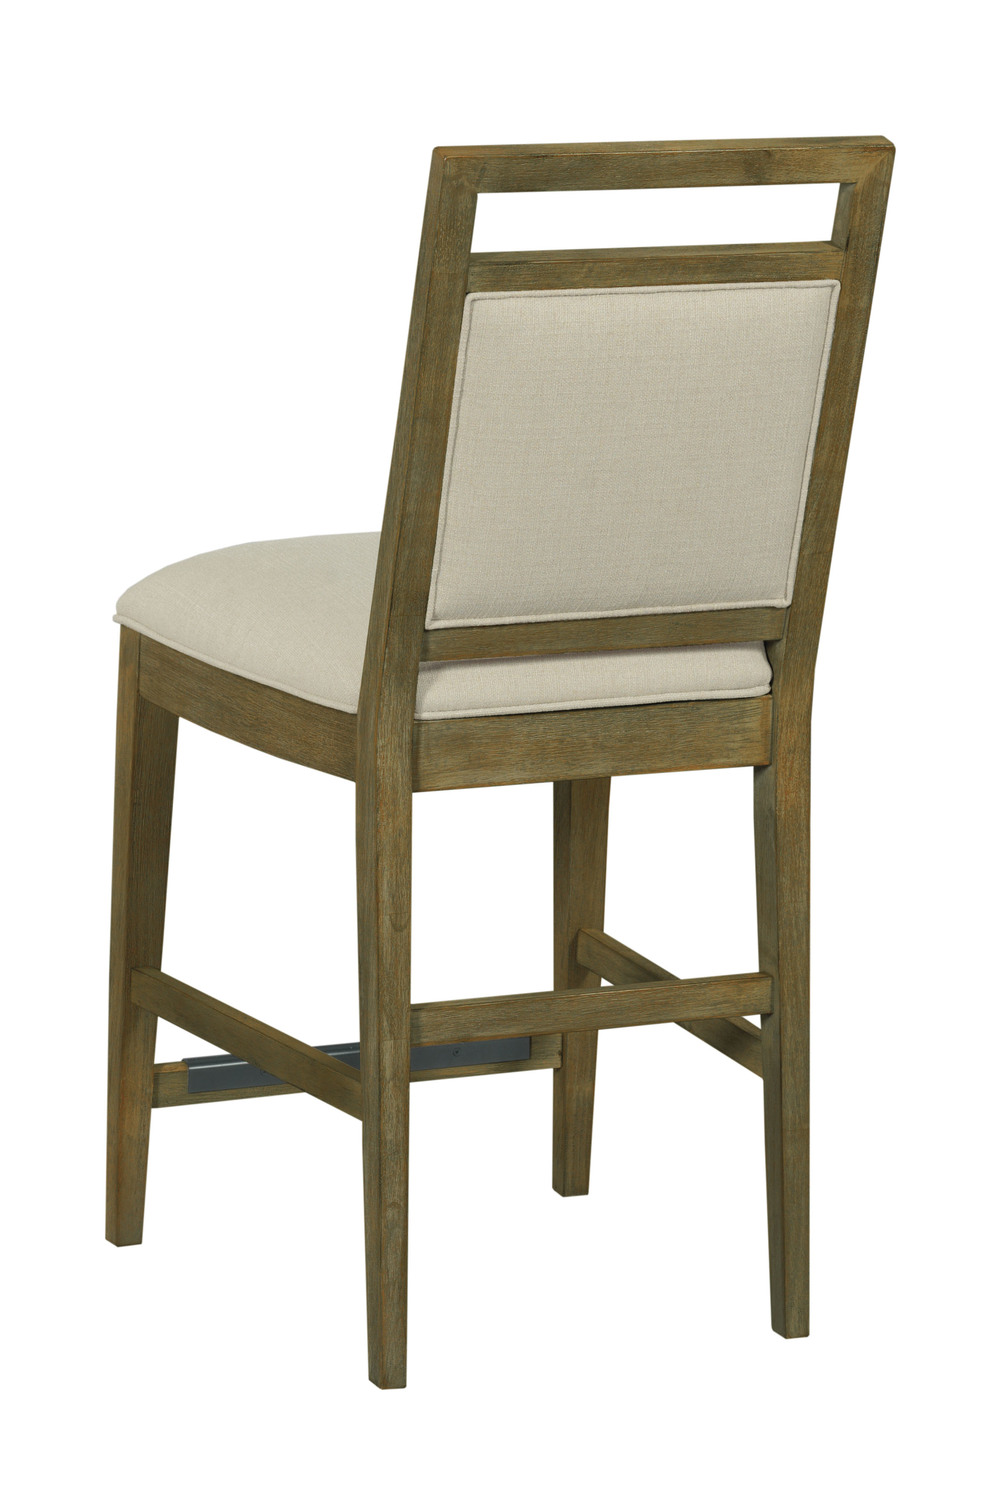 Kincaid Furniture - Counter Height Upholstered Chair